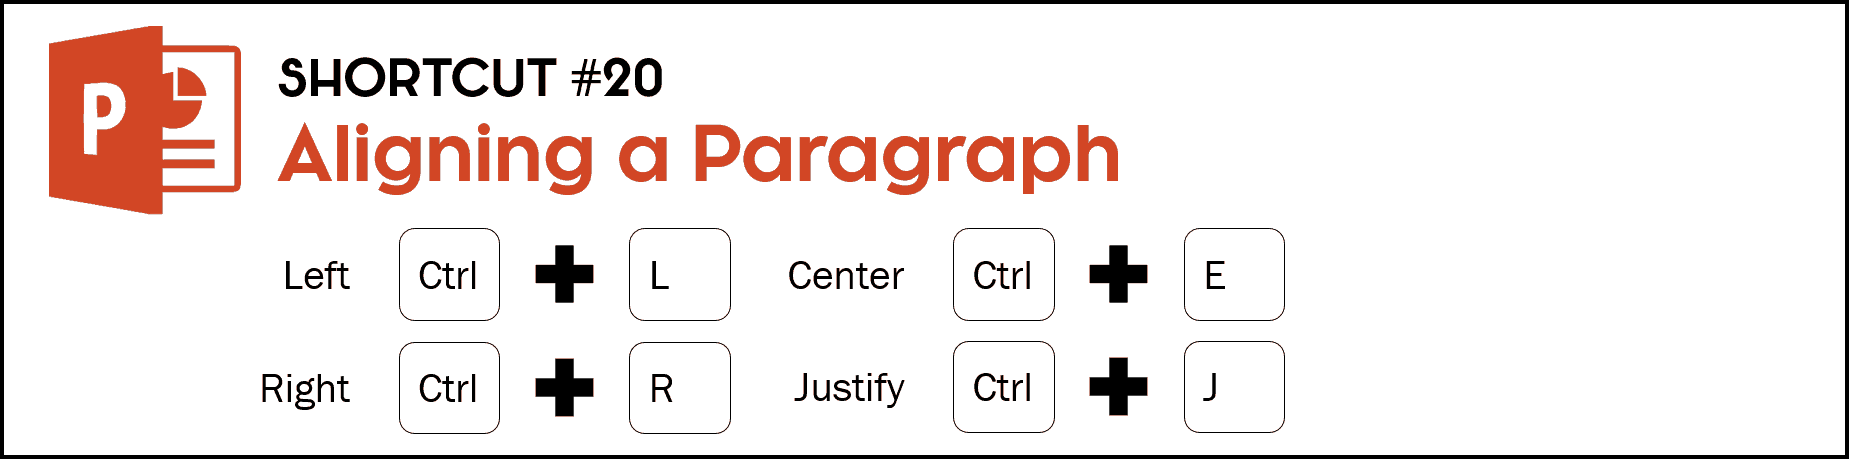 When you need to align text in a shape or text box, hit Control plus the L key or left alignment, Control plus the R key to right alignment, Control plus the E key to center align and Control plus the J key to for justify alignment